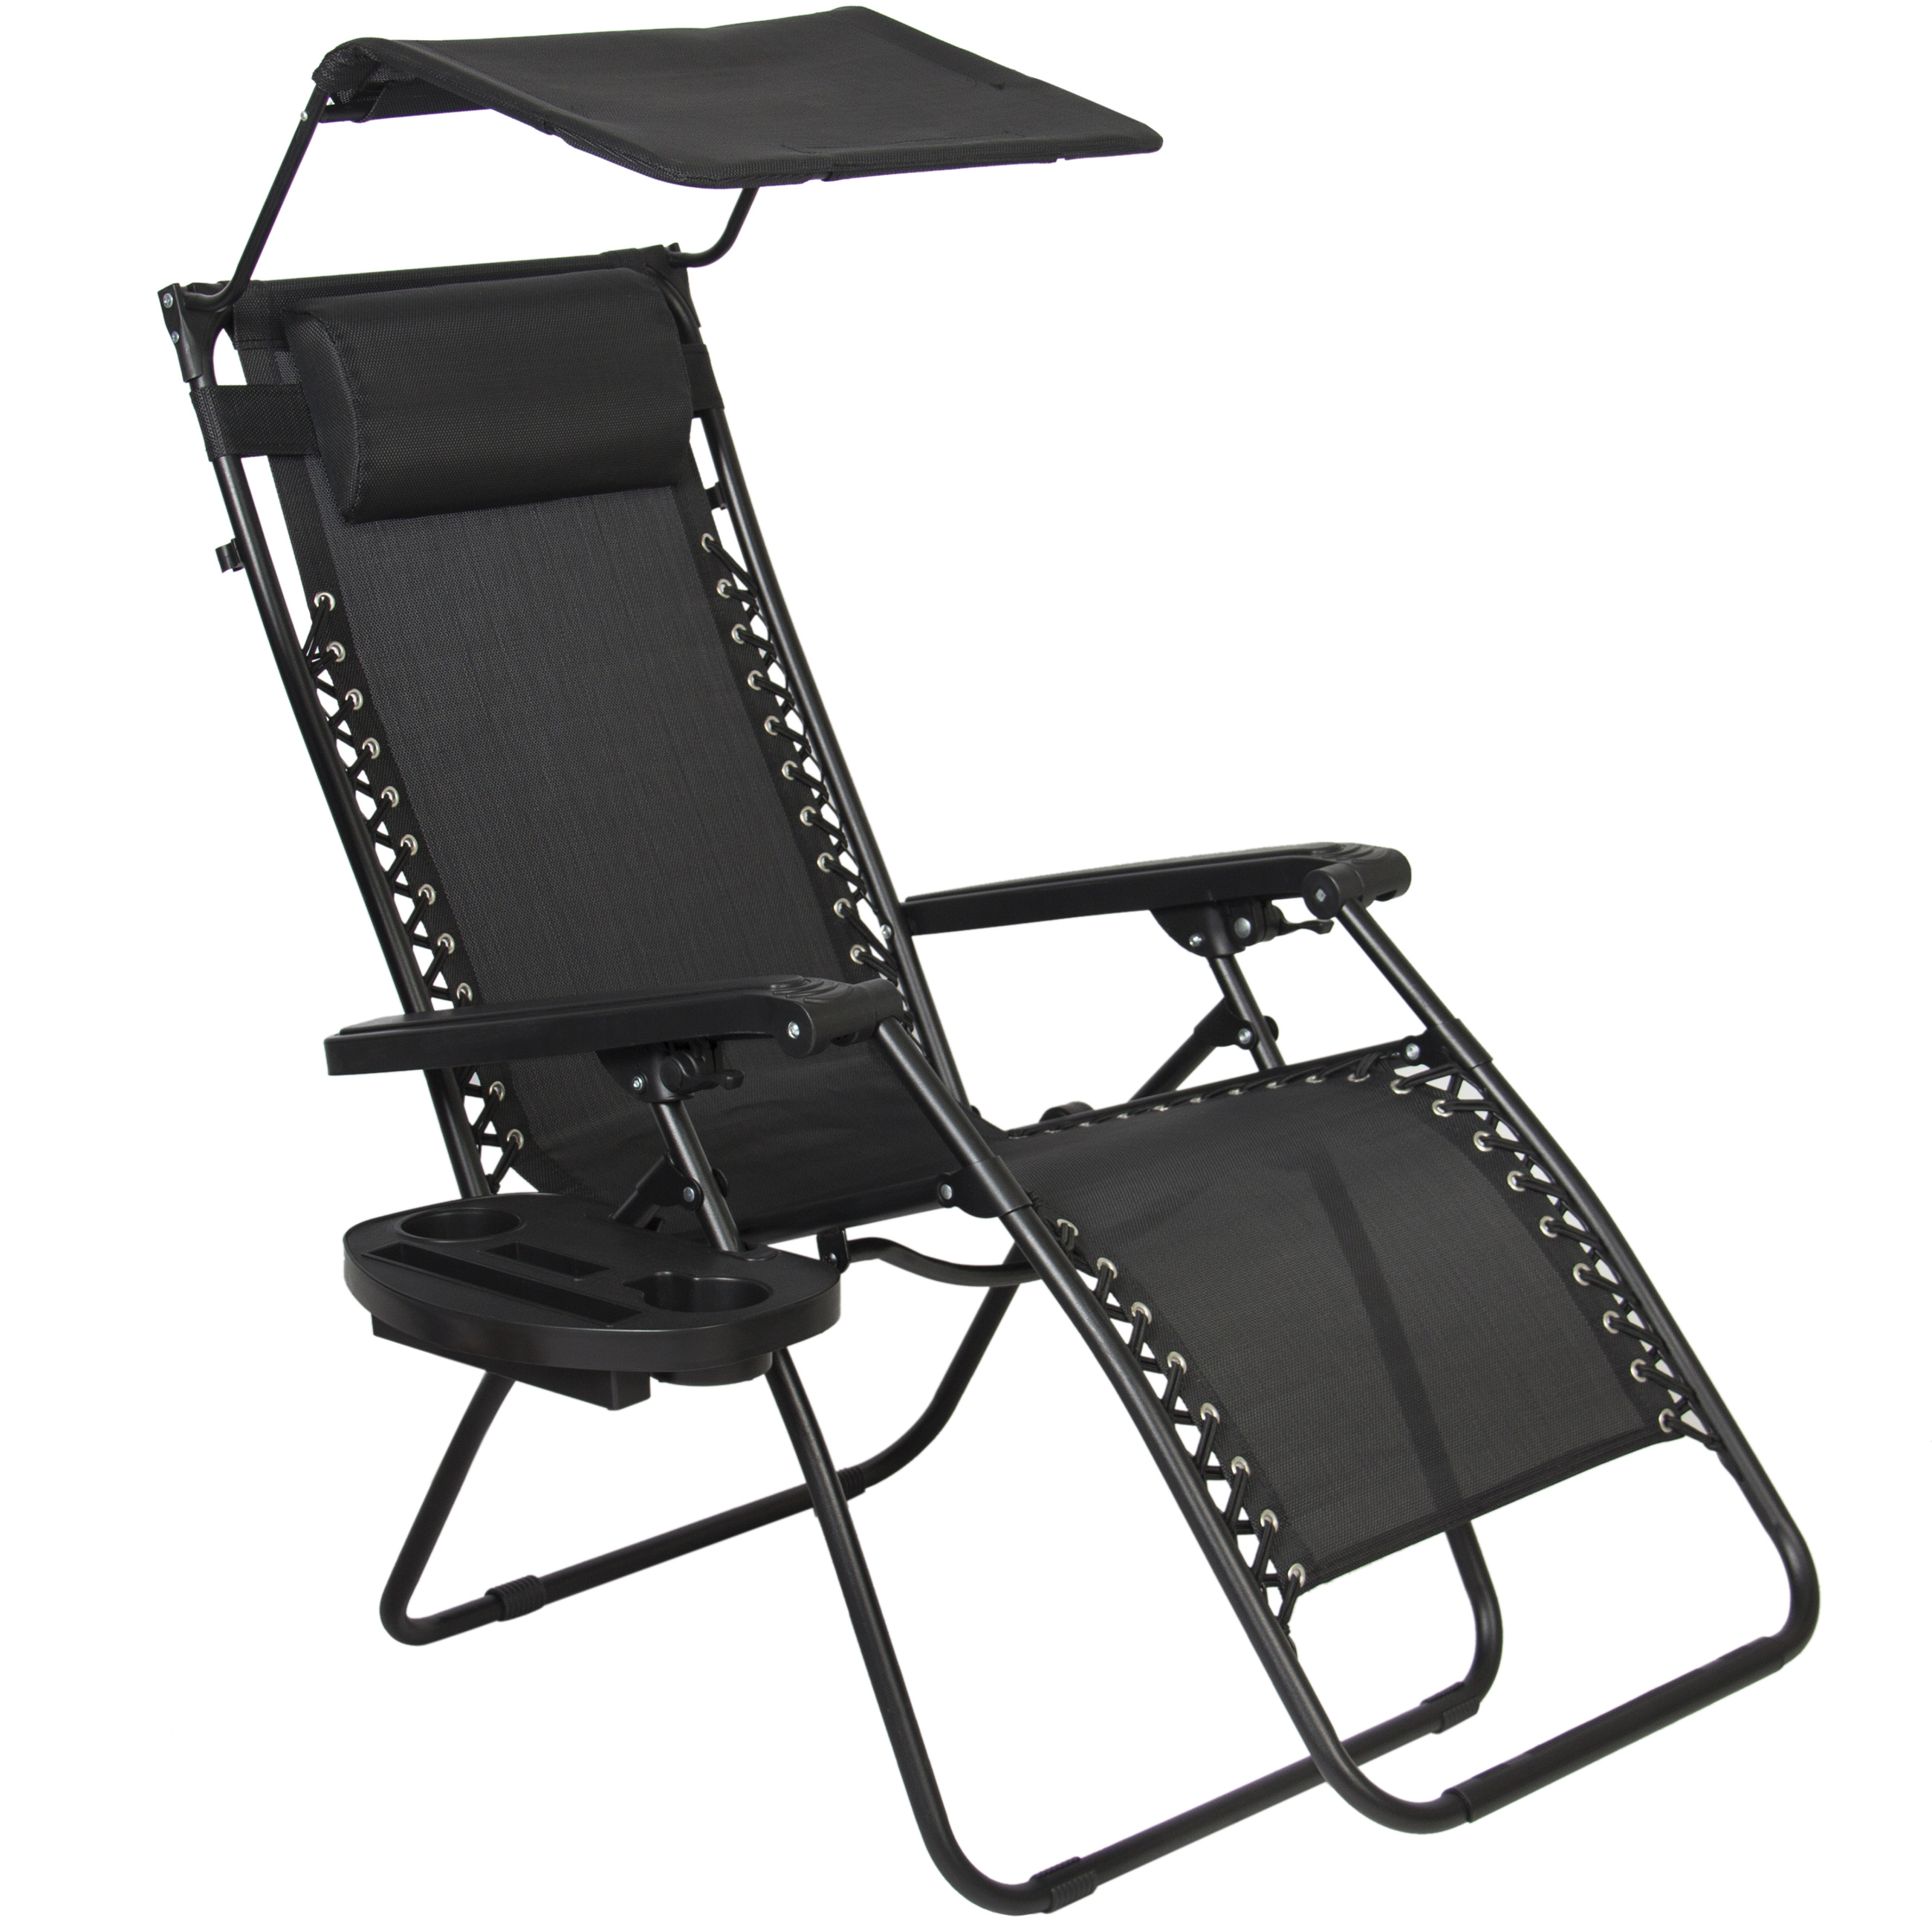 Camping Chair With Canopy Pro Comfort High Back Shade Folding Chair Tan Black